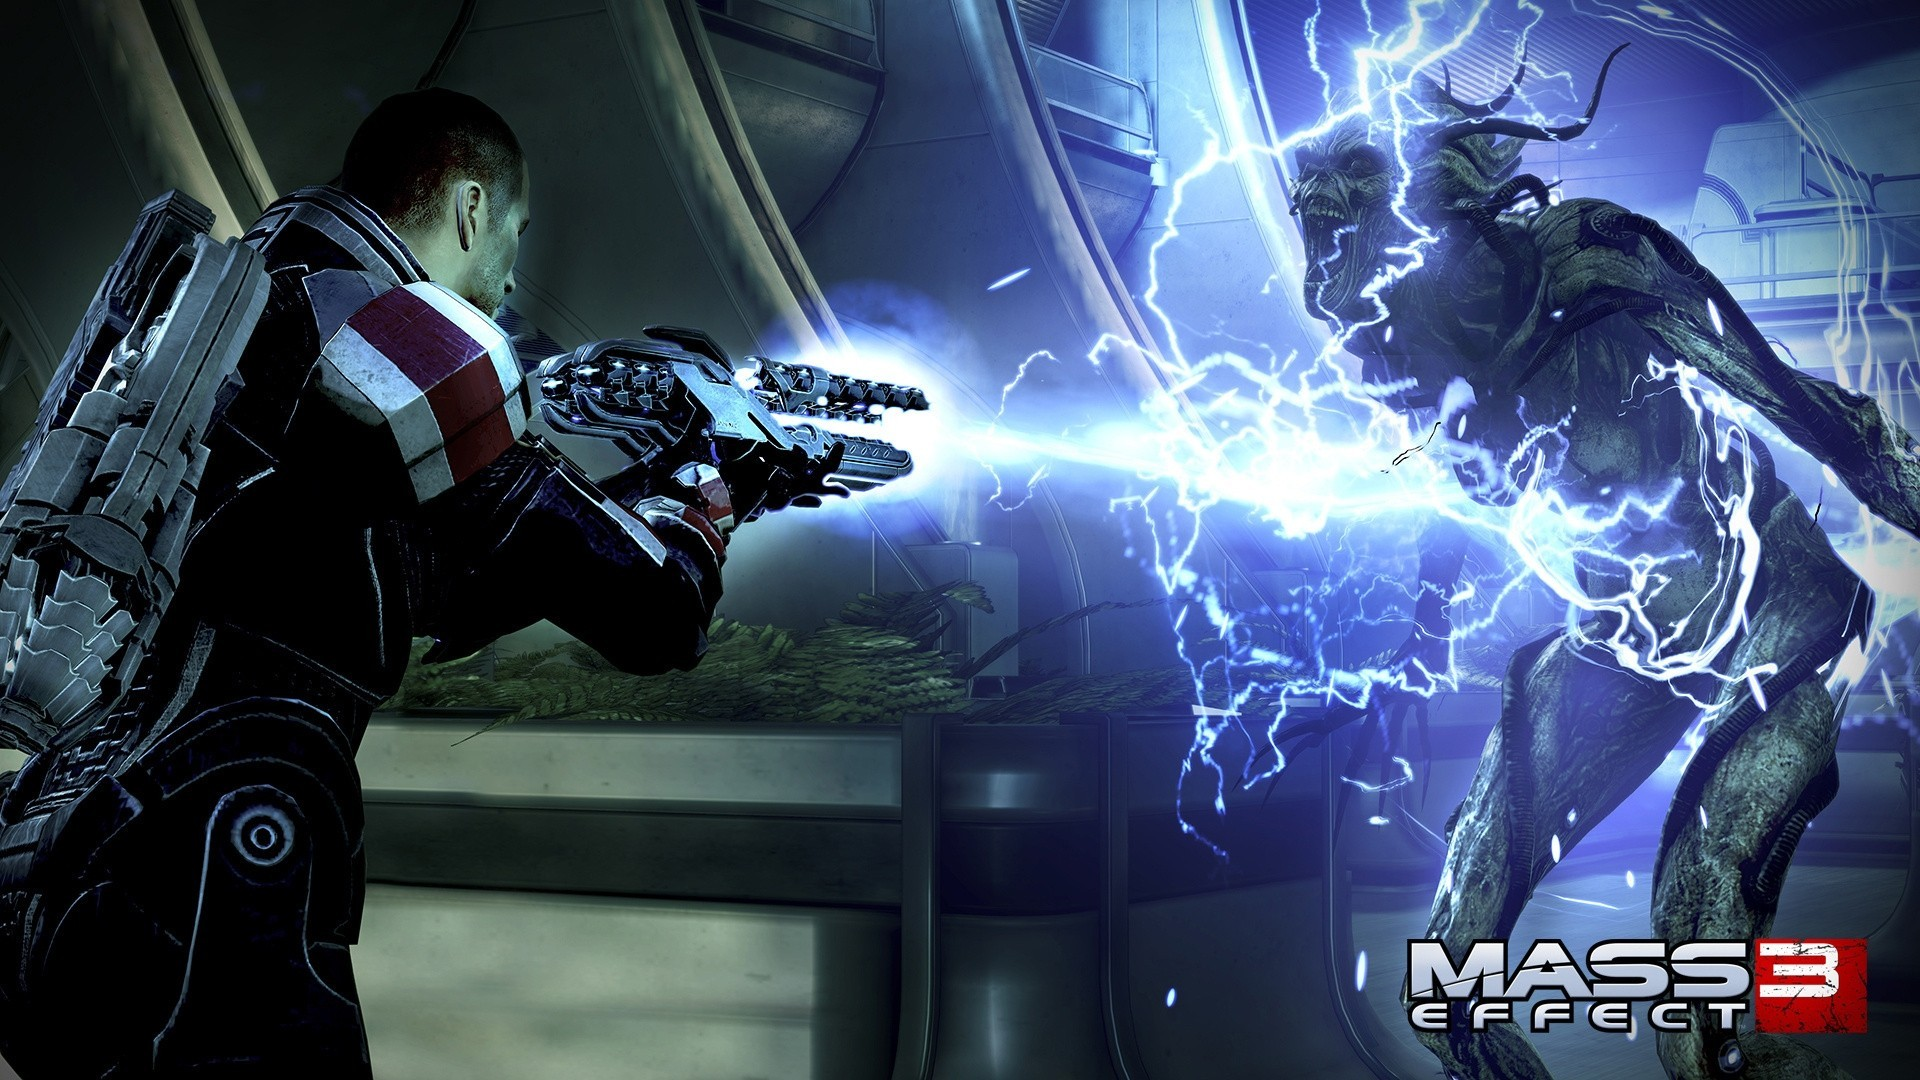 Mass Effect 3 N7 Digital Deluxe Edition (RU) (Warranty)